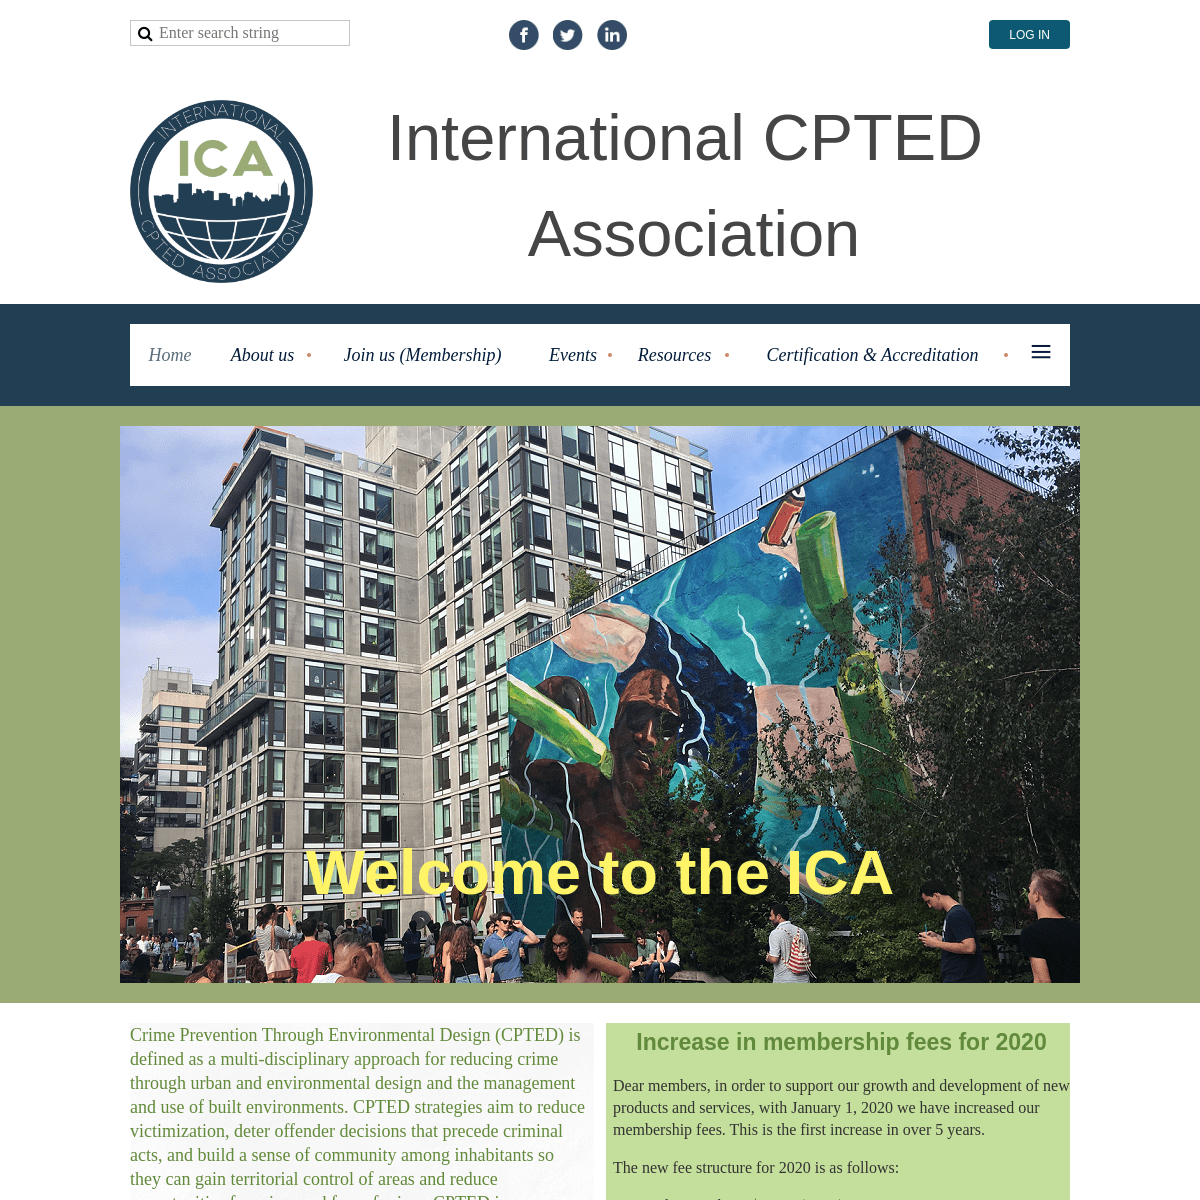 International CPTED Association home page